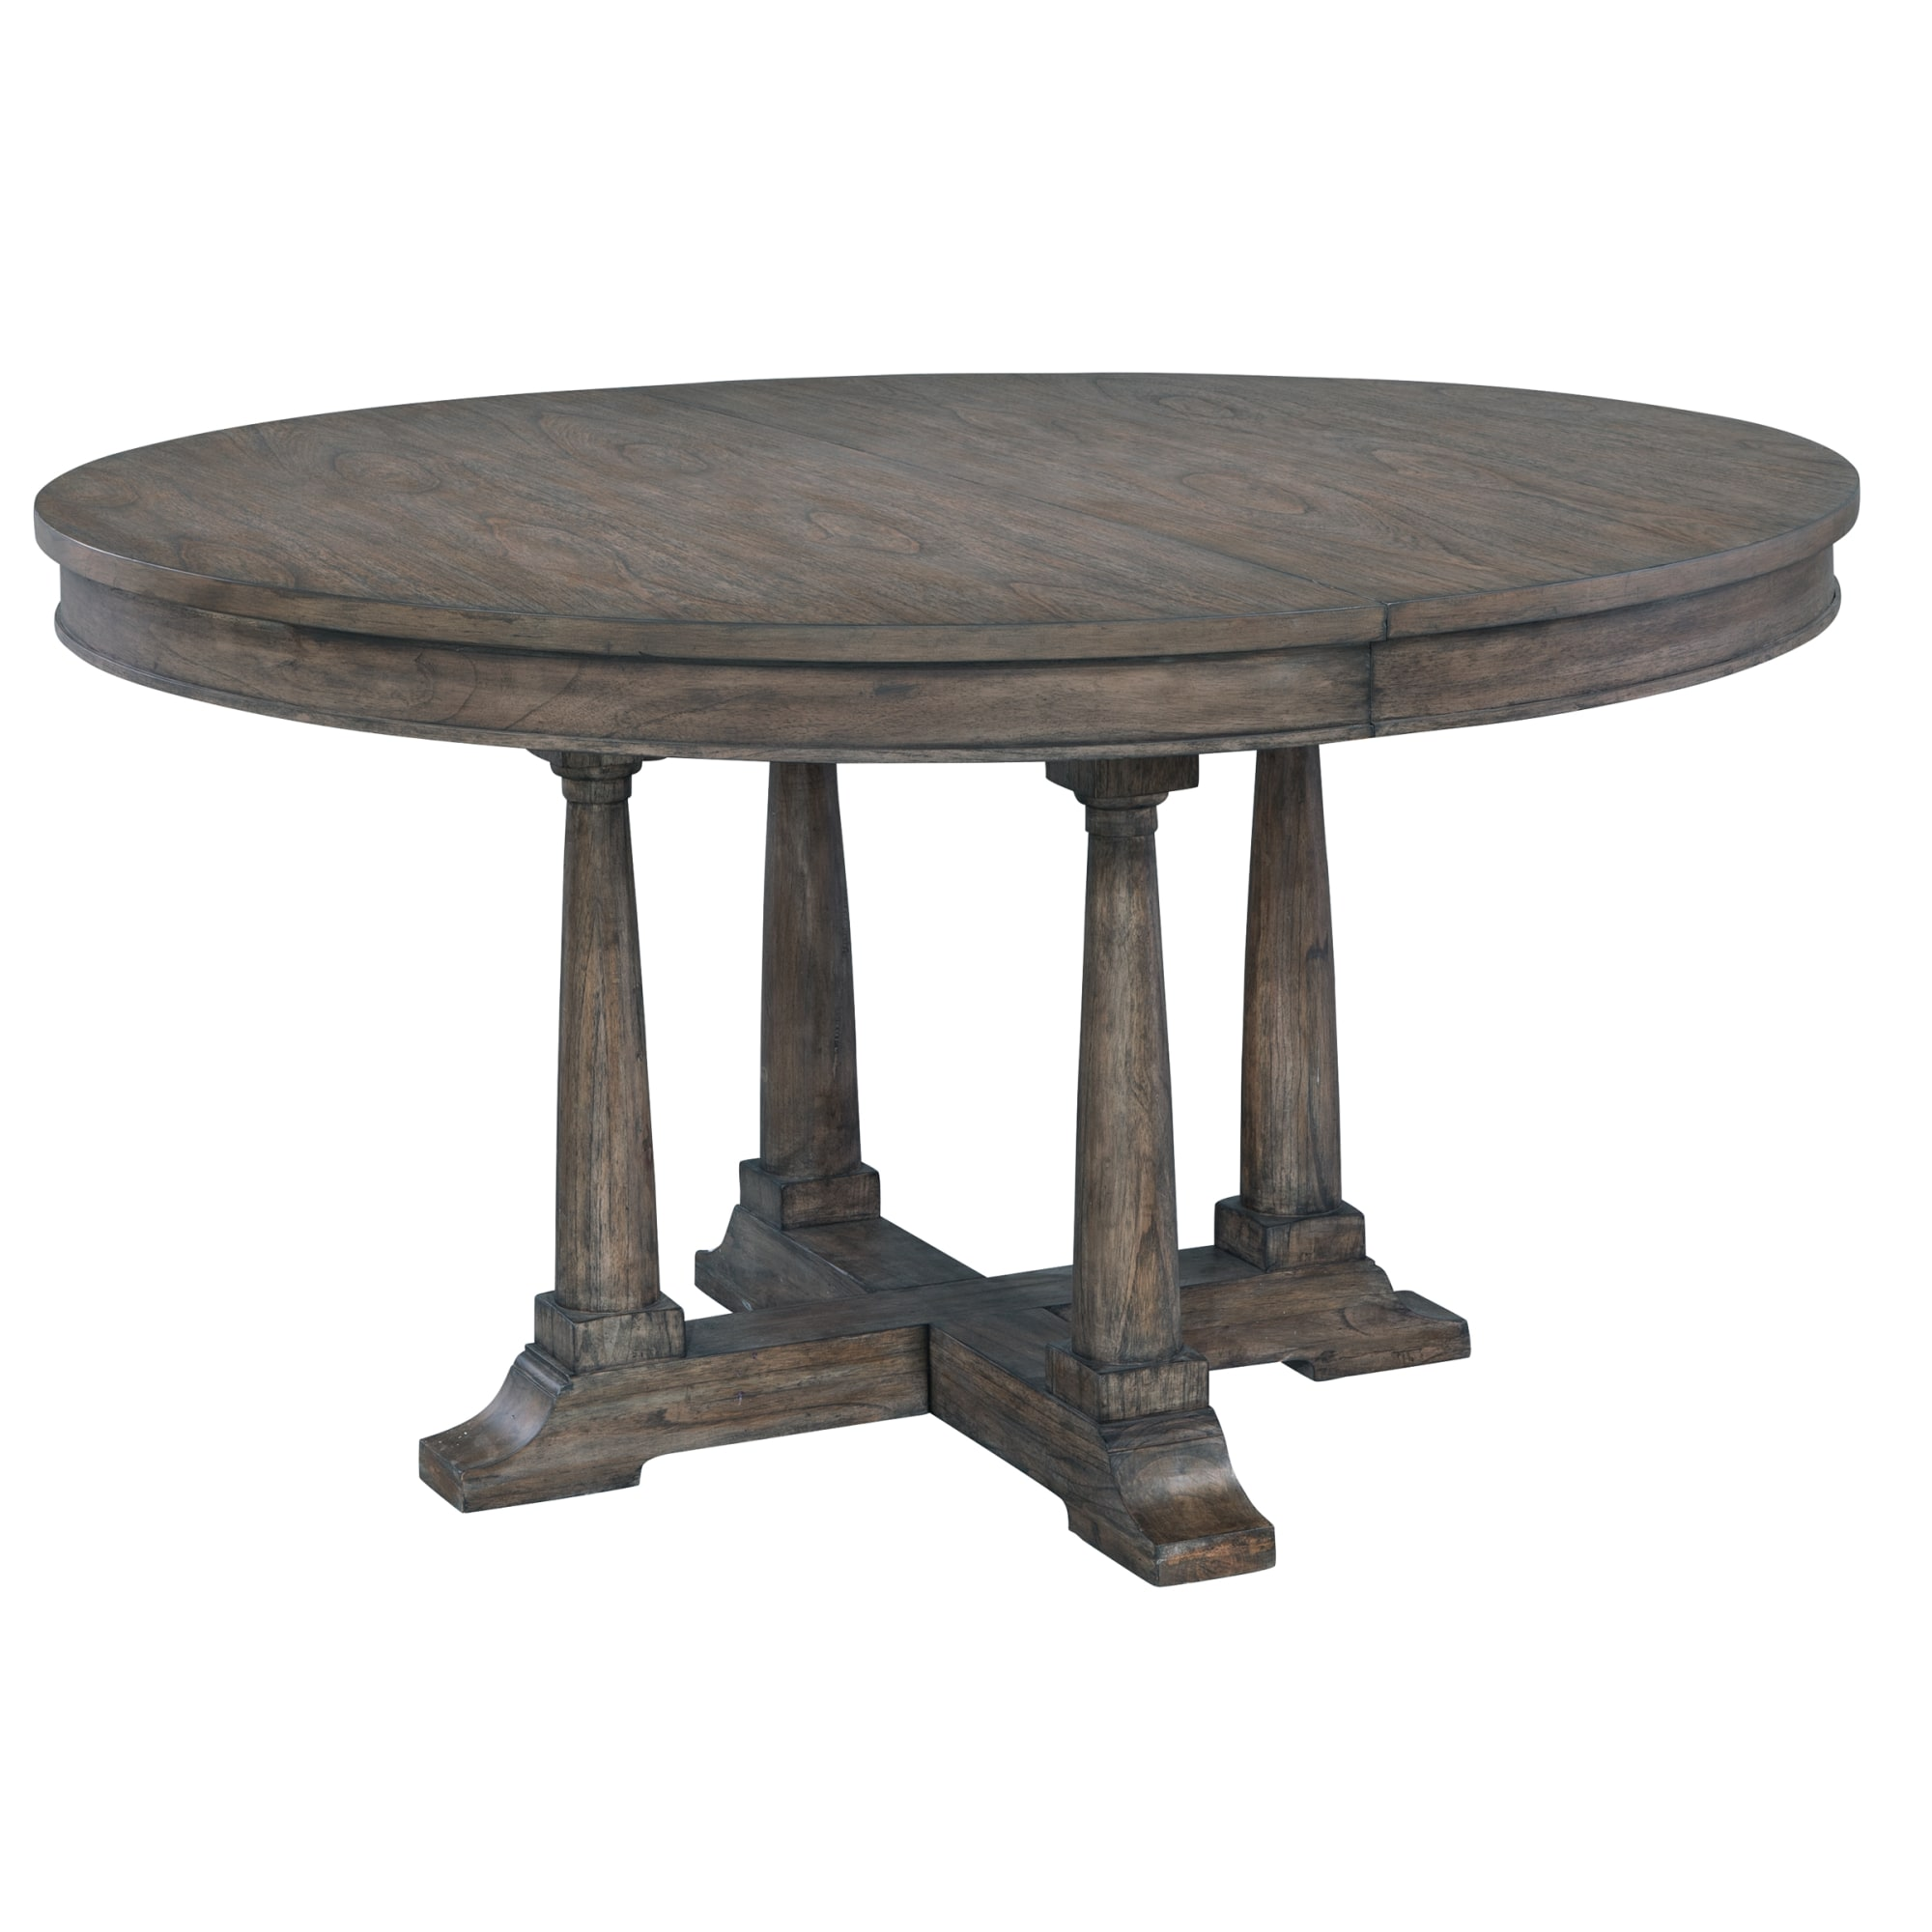 Image for 2-3521 Lincoln Park Round Dining Table from Hekman Official Website